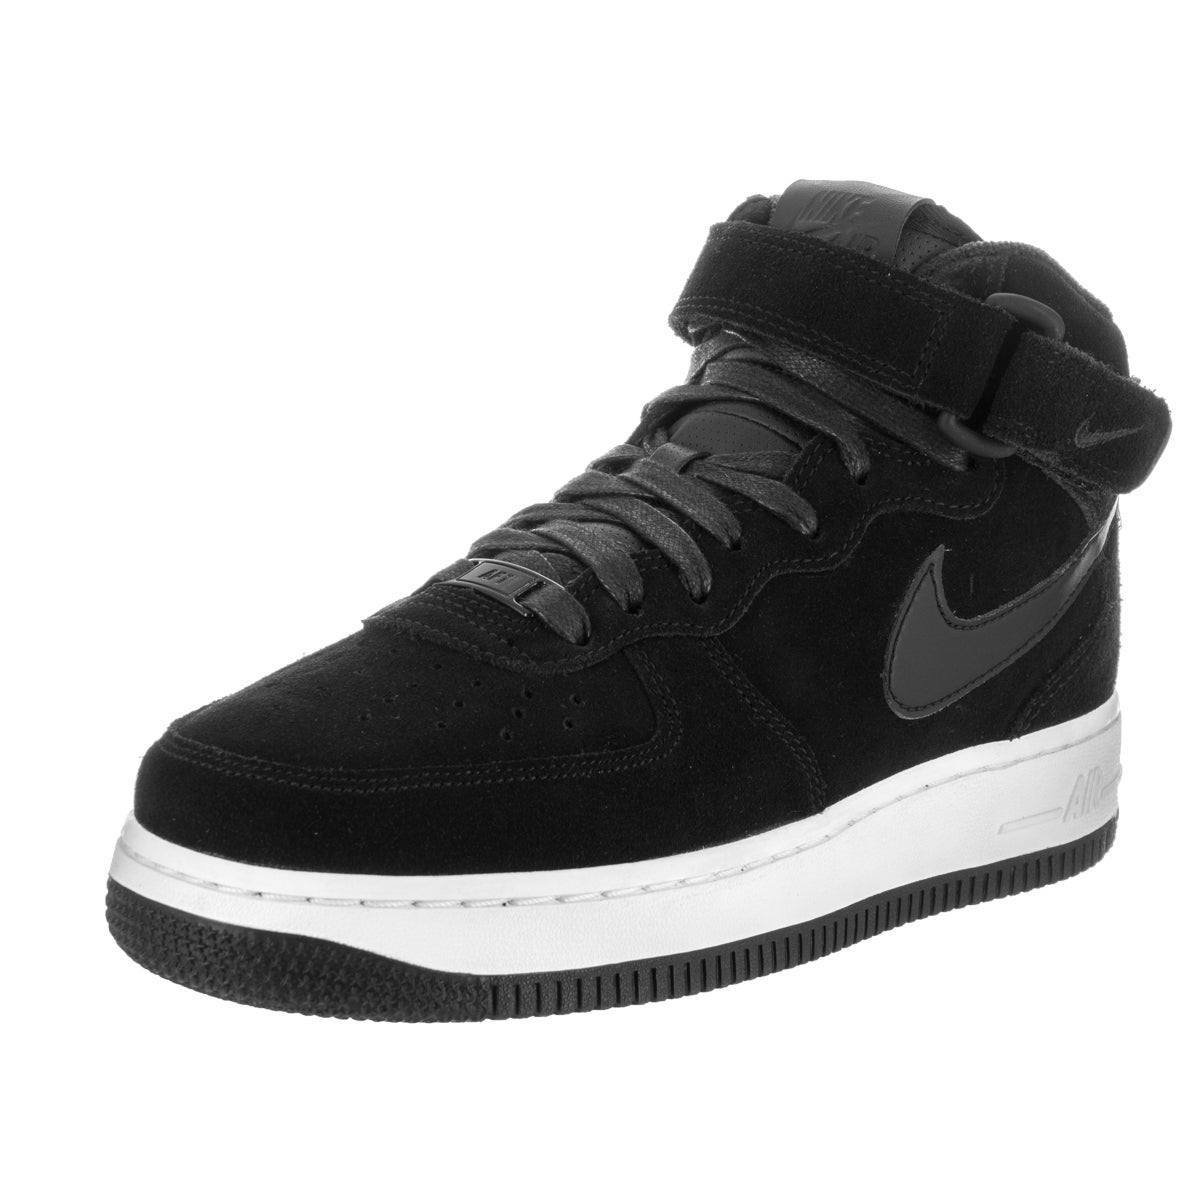 Nike Women's Air Force 1 '07 Black Suede Mid Seasonal Basketball shoes